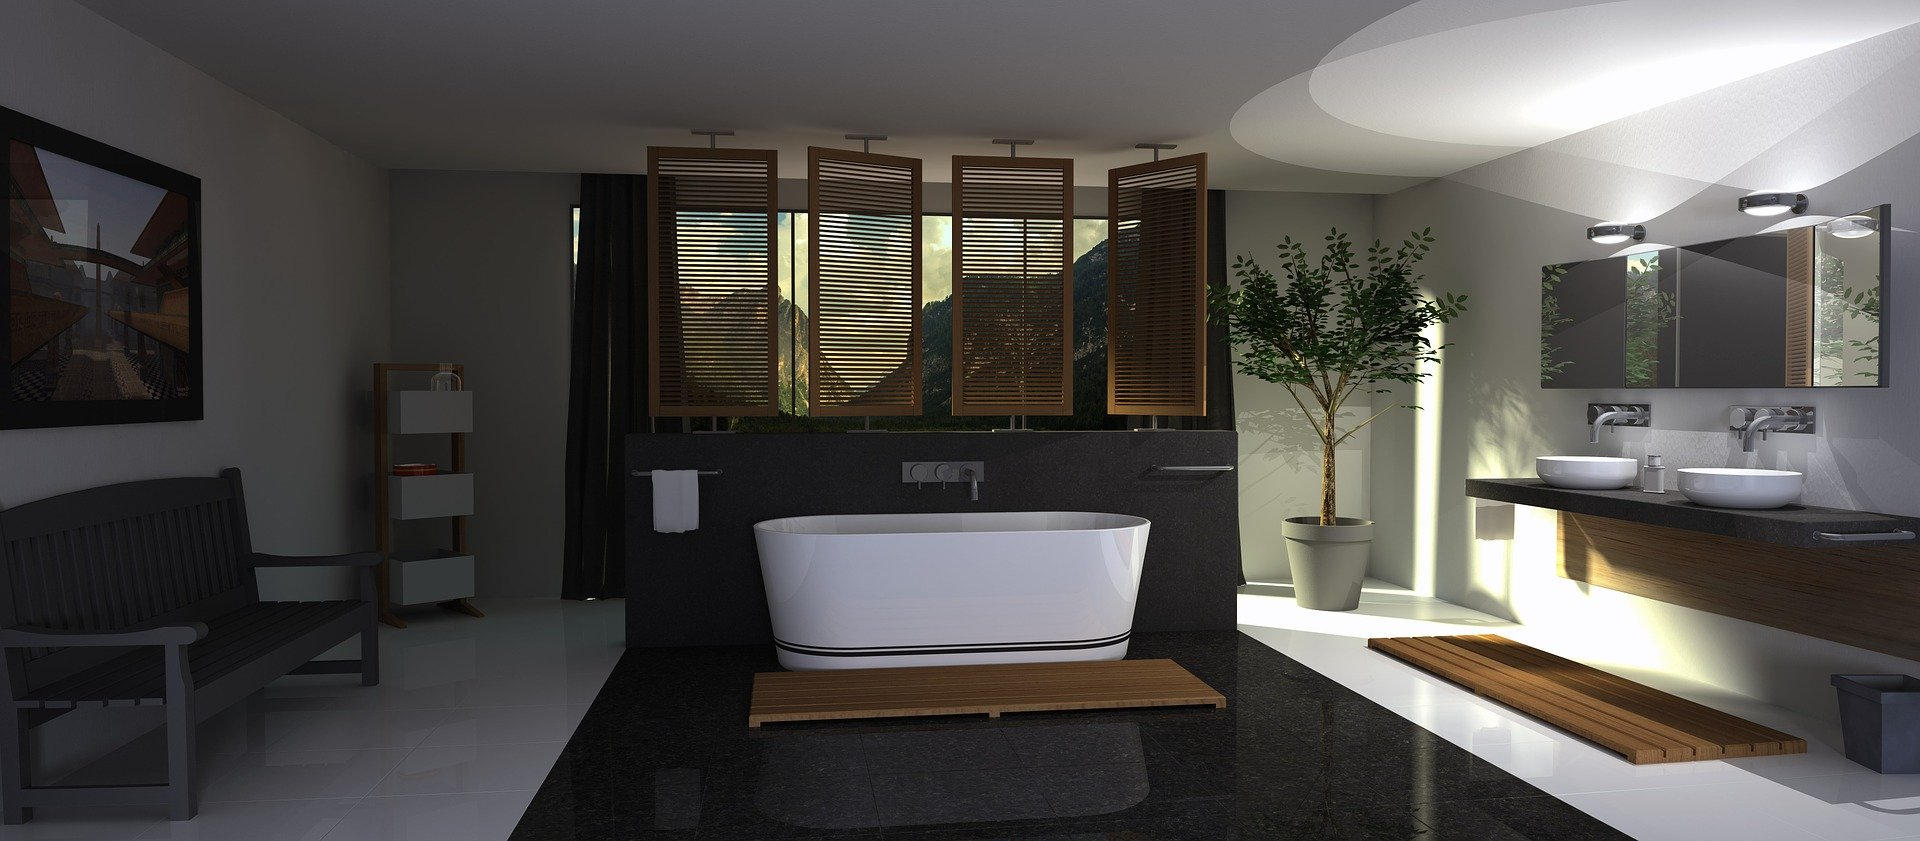 Bathroom Designs with variety of styles to match your home